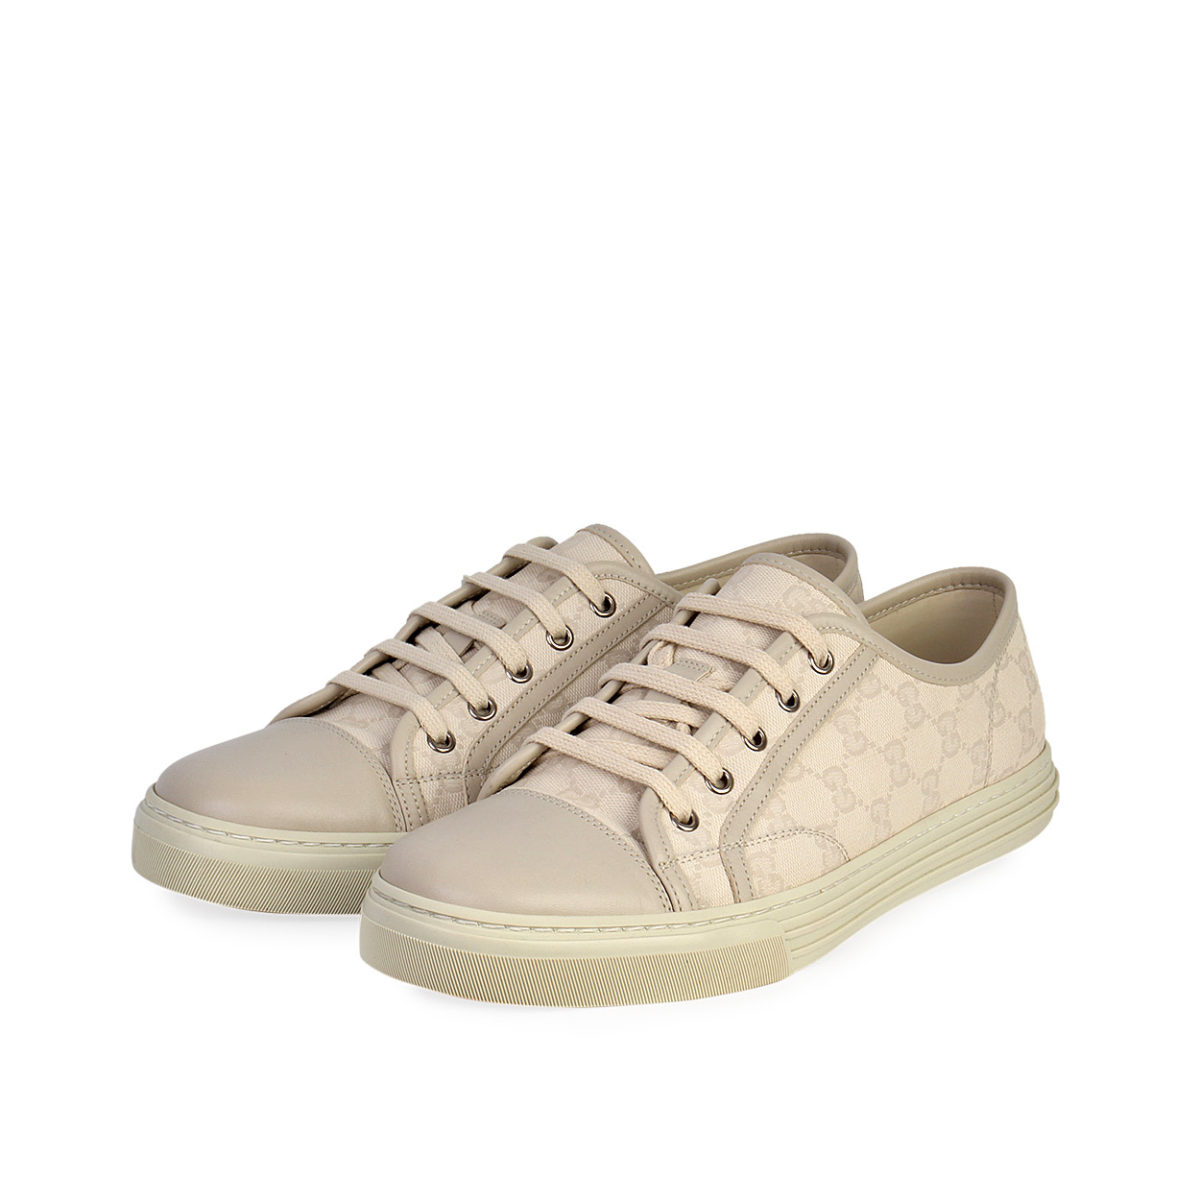 GUCCI Leather Toe GG Canvas Low Top